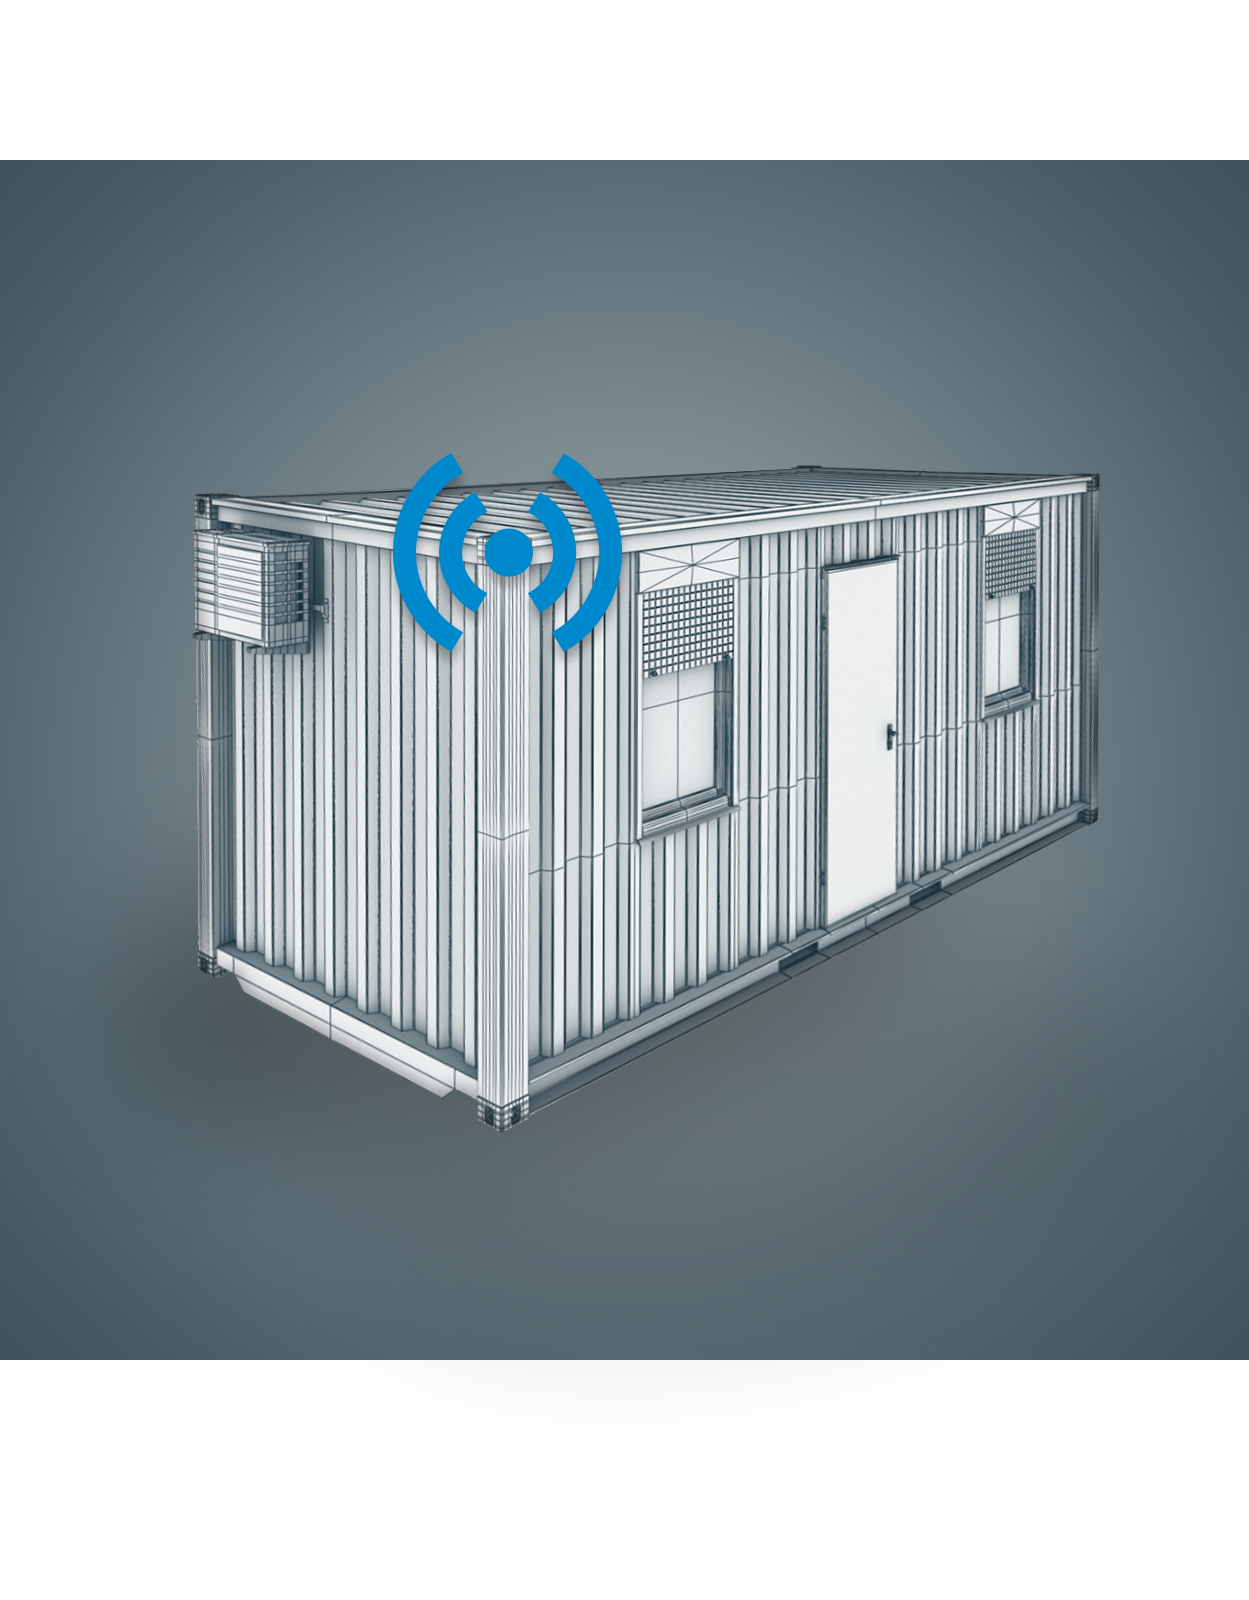 A model of a WeatherBuild station mounted on a job site trailer